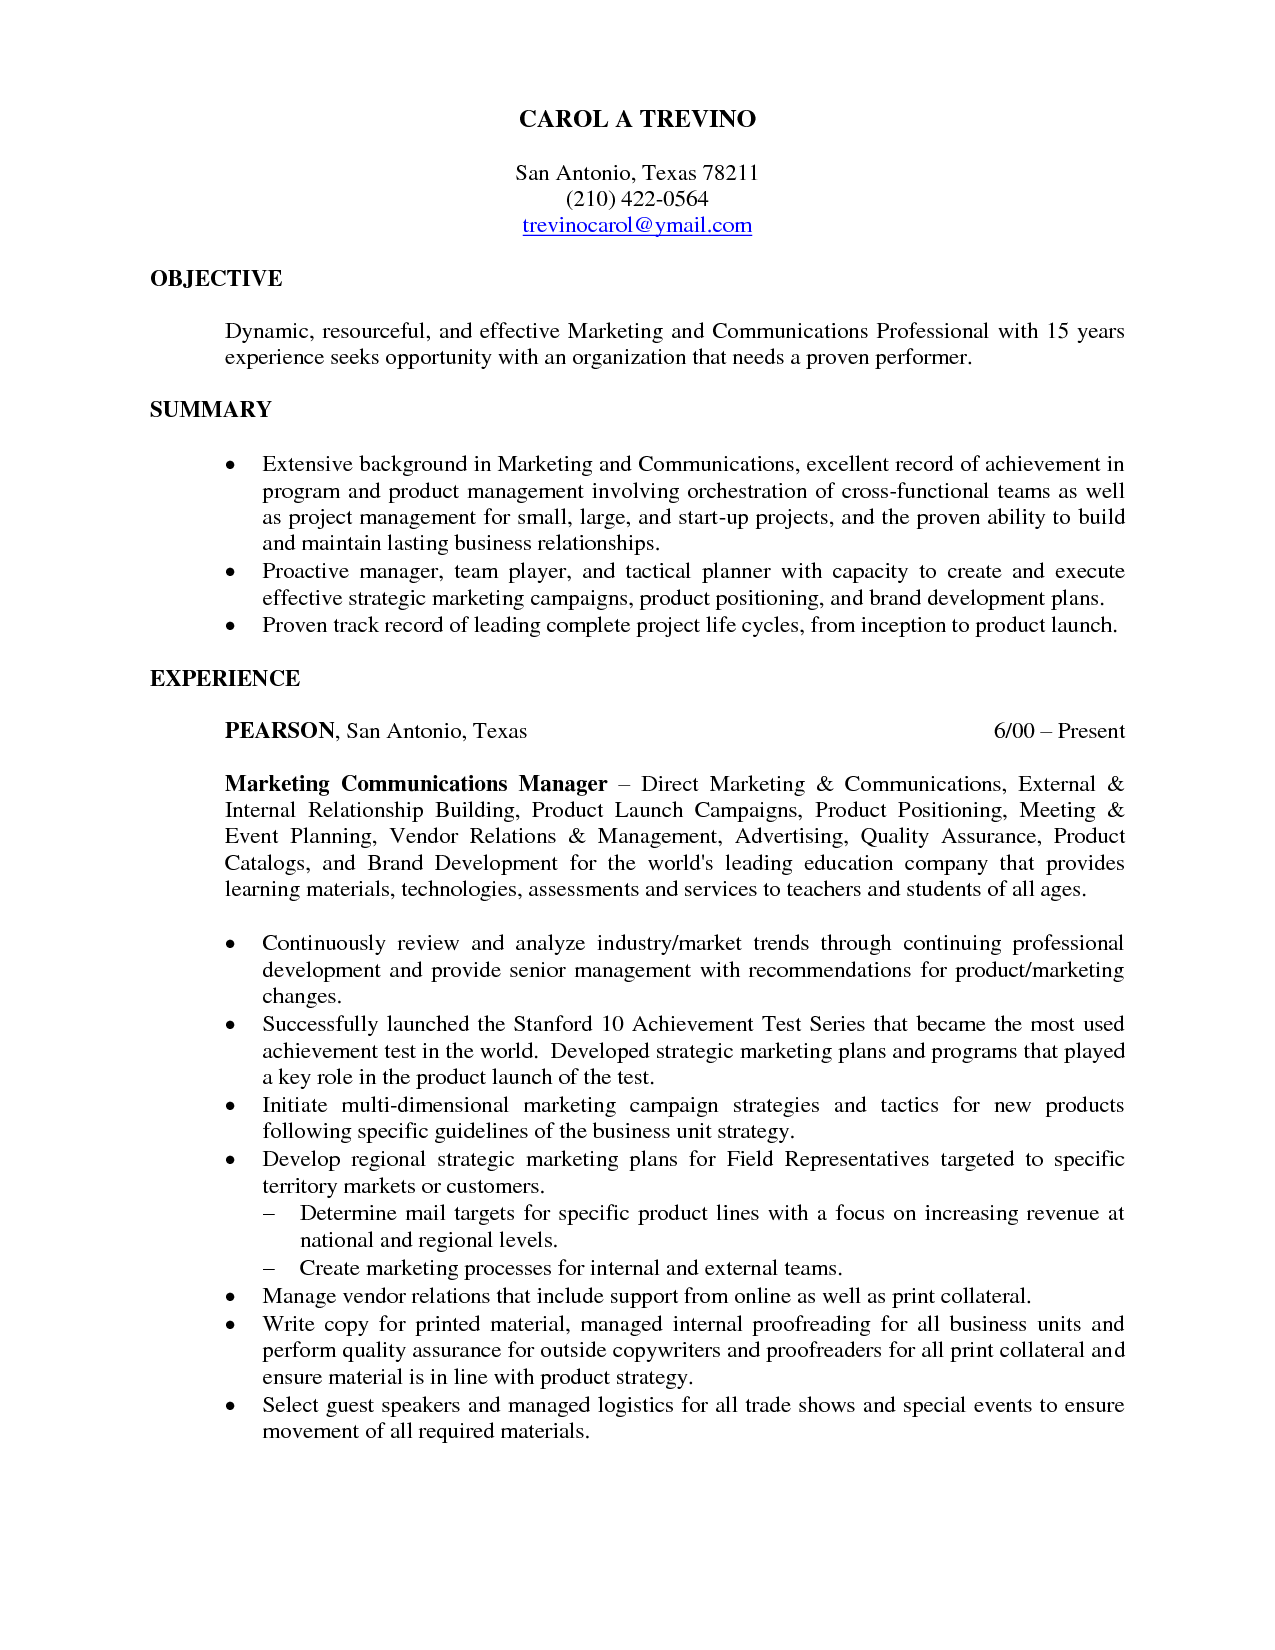 sample professional profile for resume how write career objective resume samplebusinessresume objective for marketing resumeregularmidwesterners resume